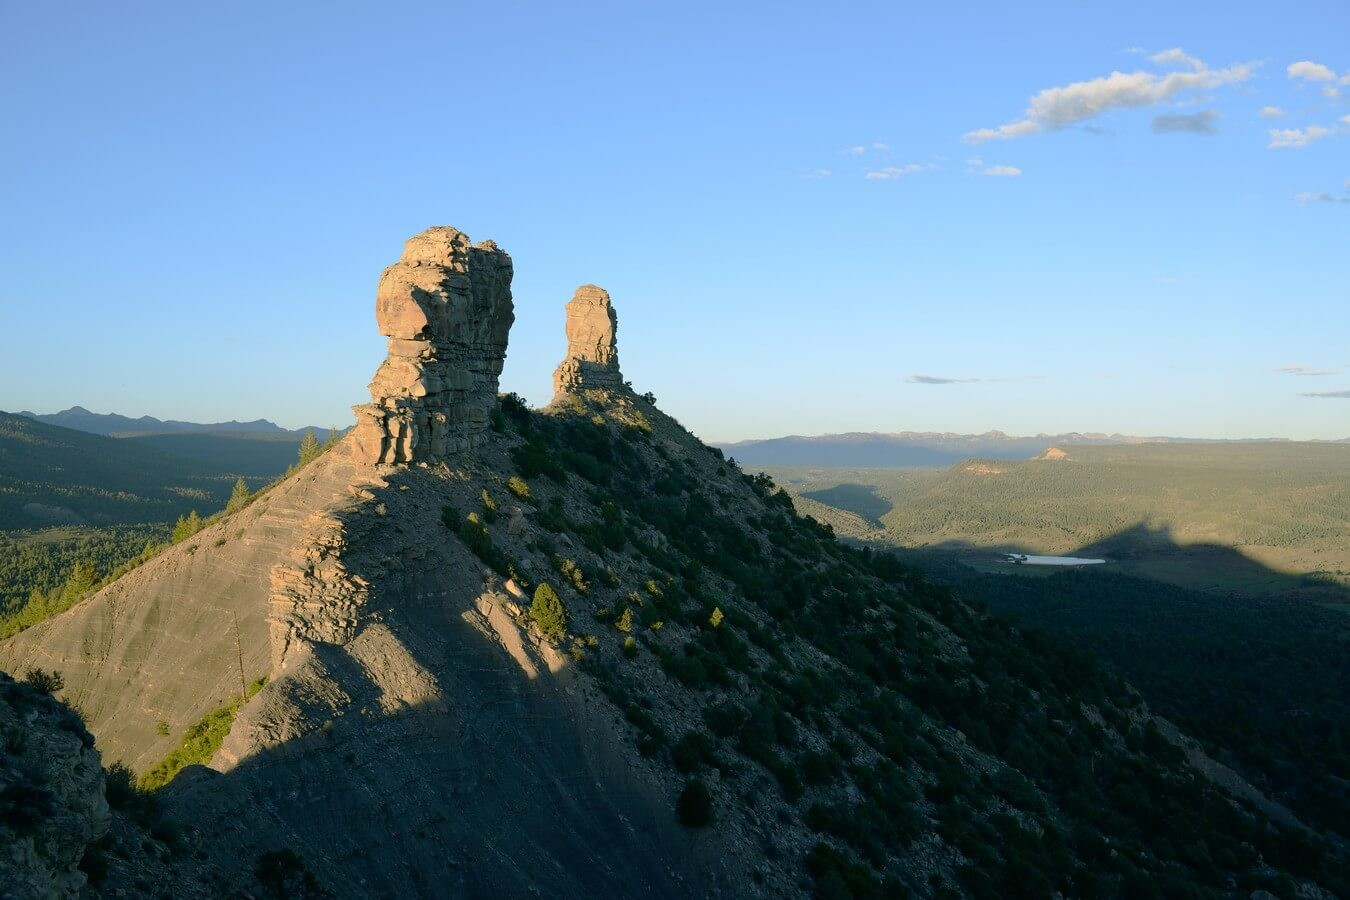 Chimney Rock National Monument